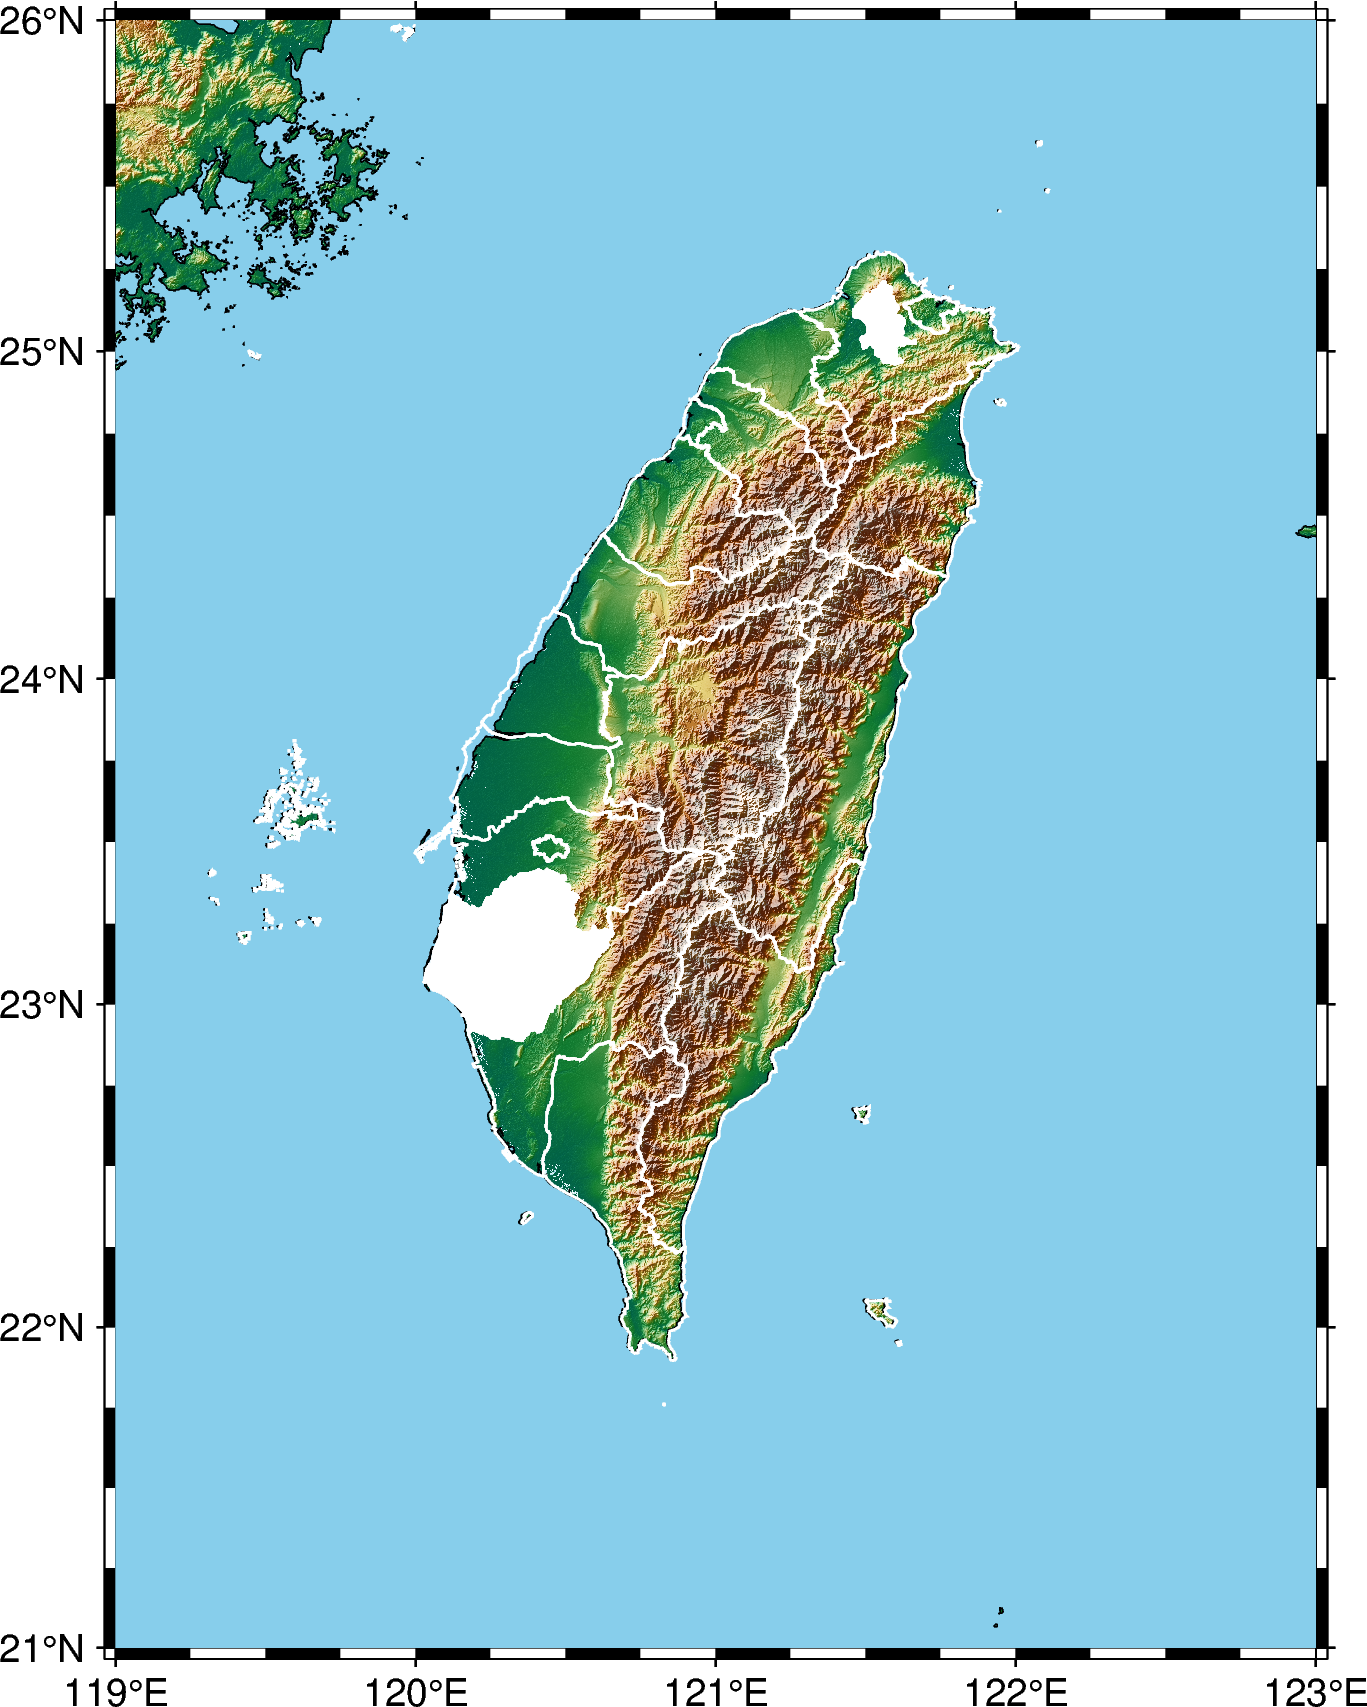 Topographic Map of Taiwan with counties